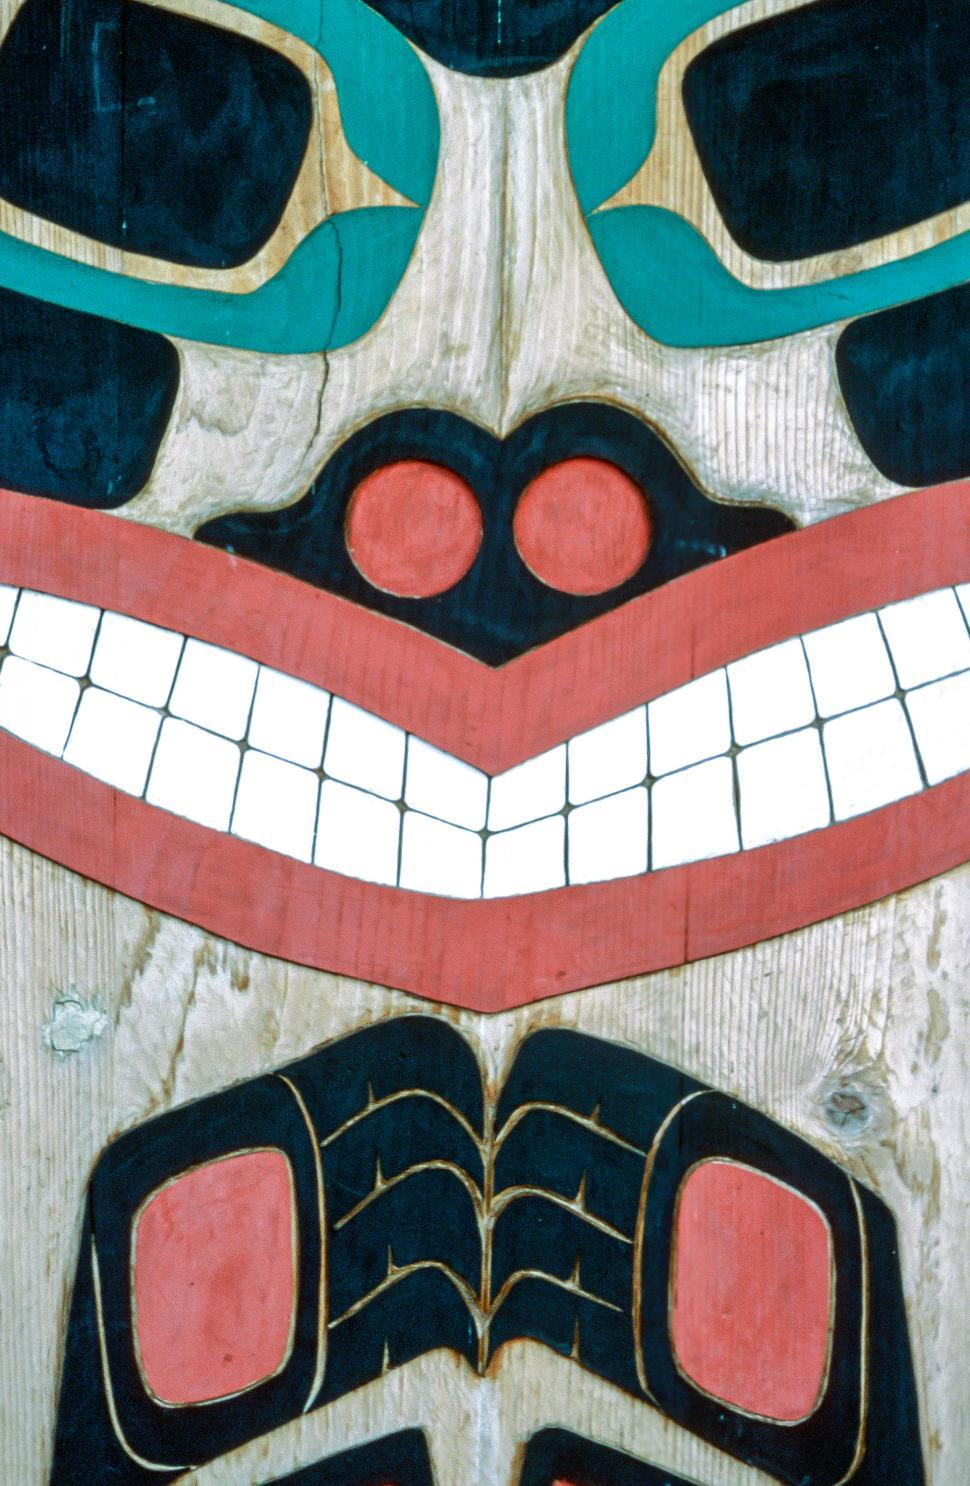 Download Free Stock HD Photo of Totem face Online